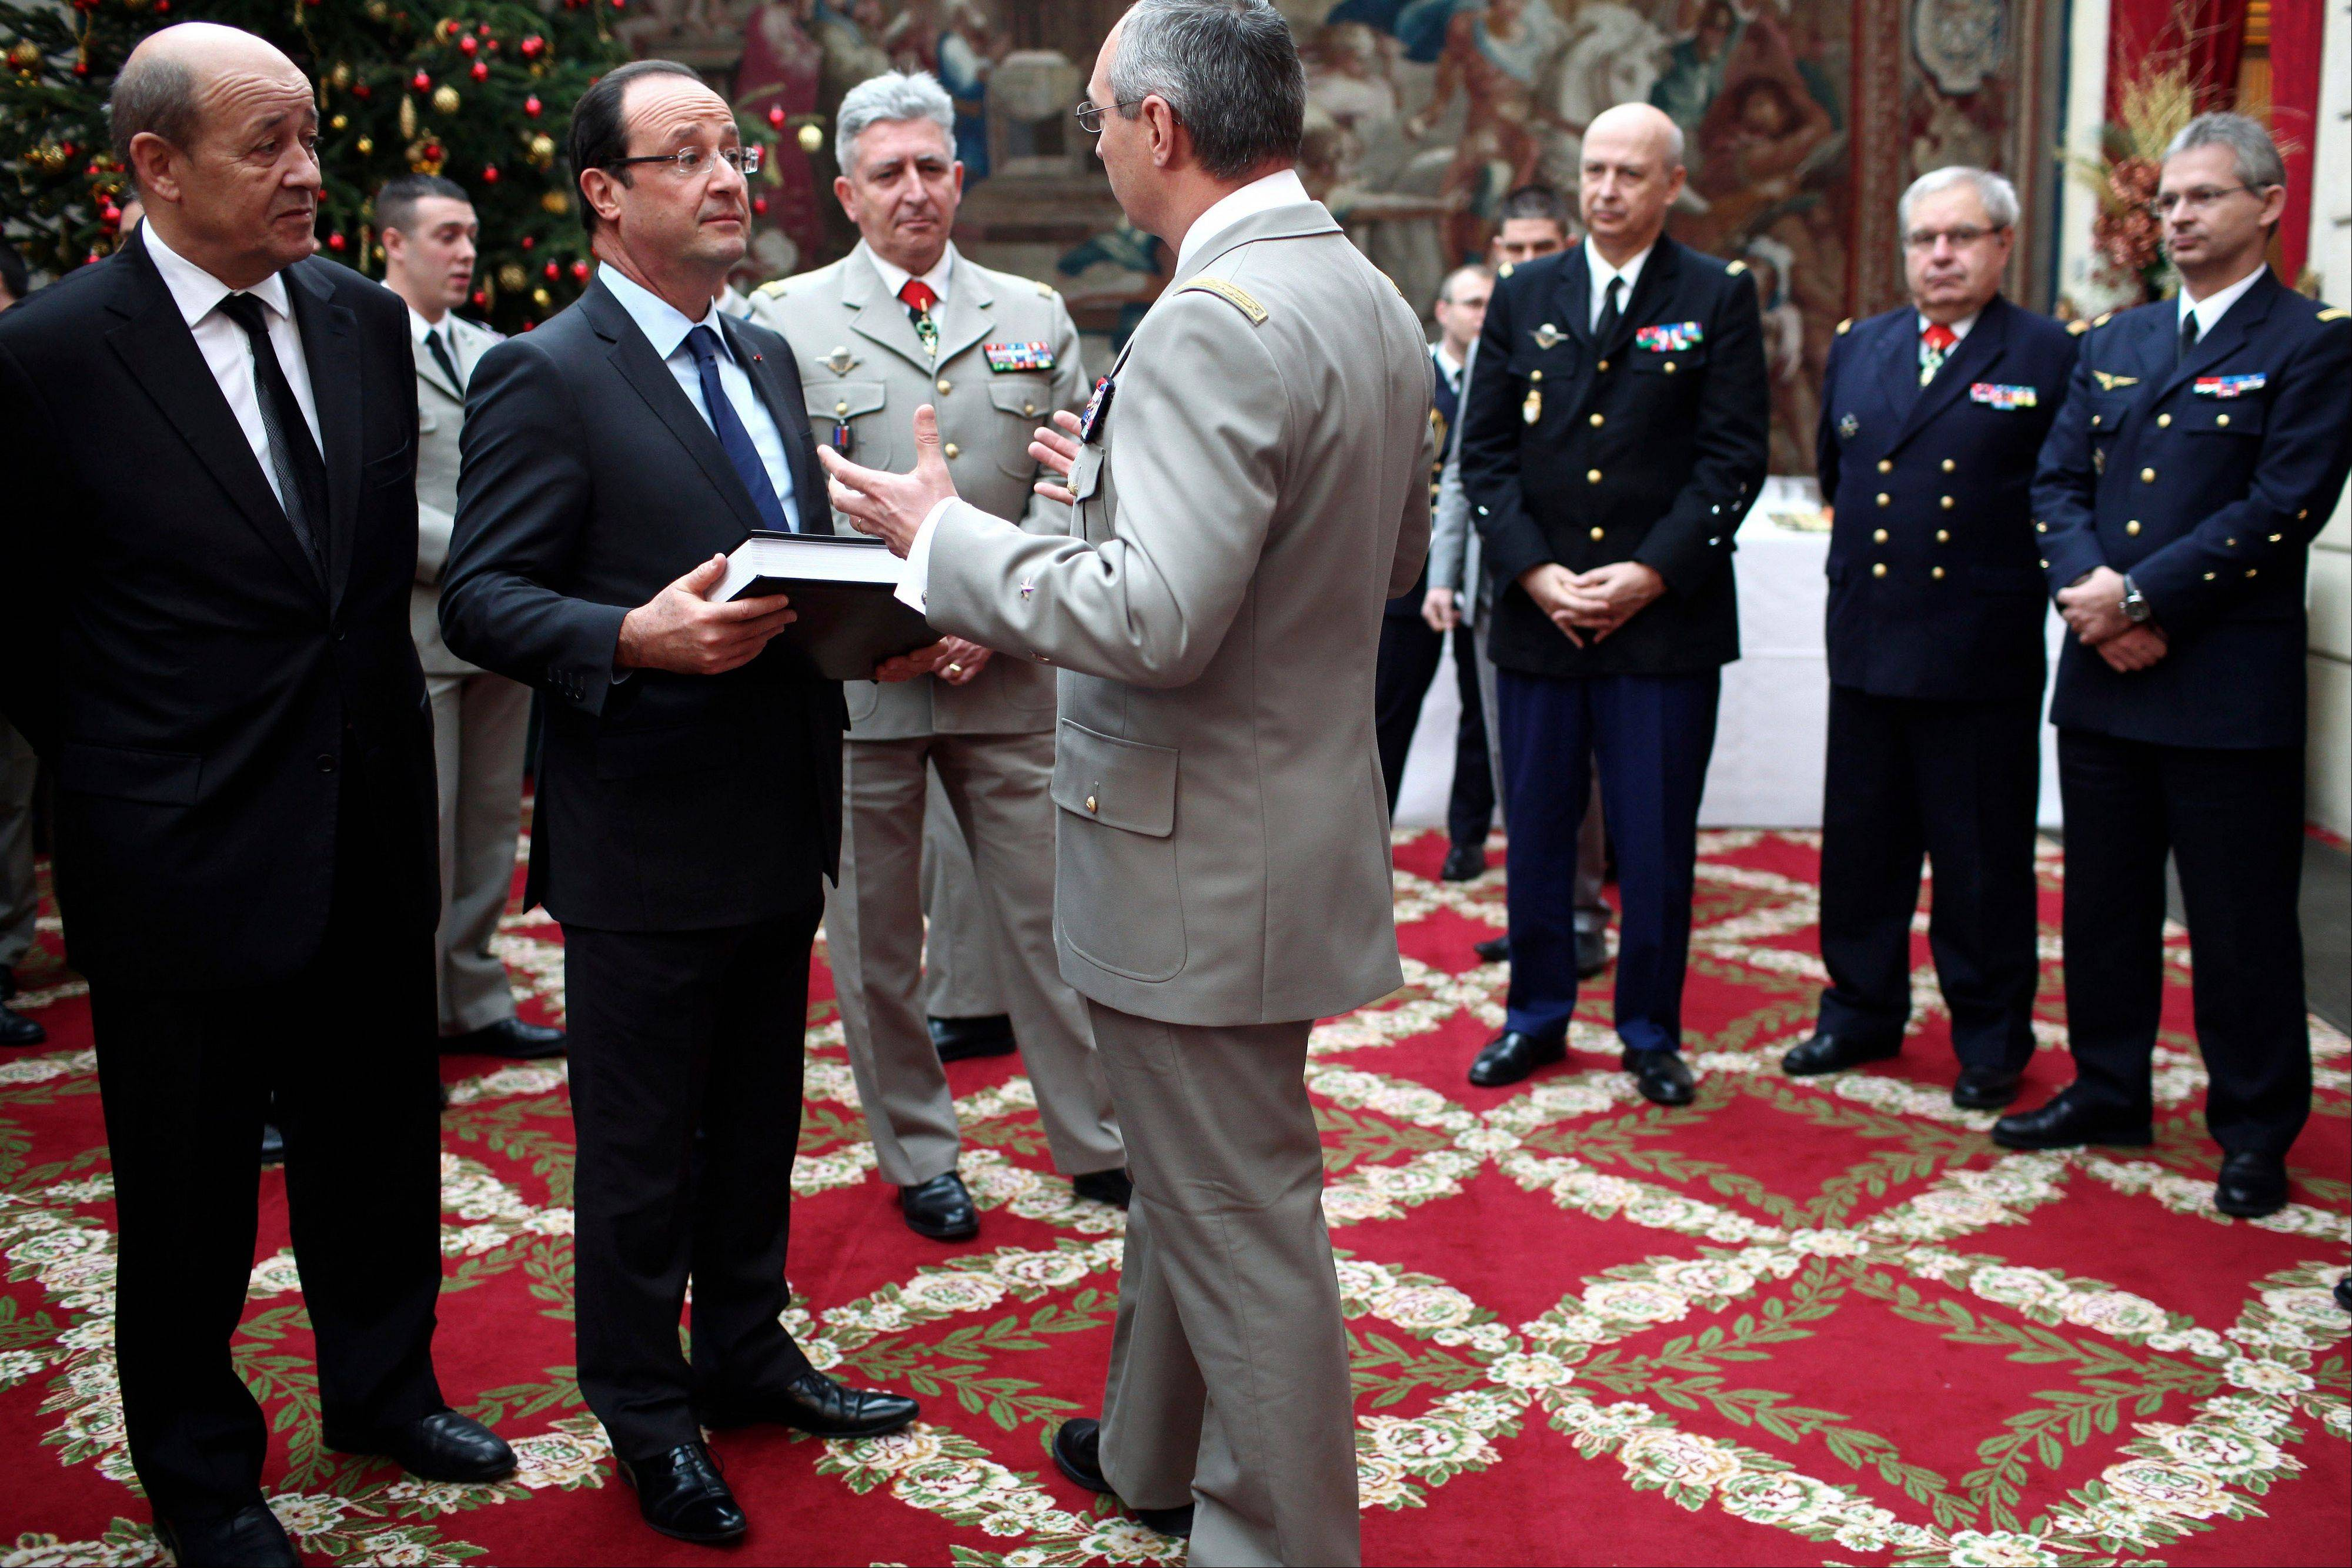 "France's President Francois Hollande, second left, and France's Defense Minister Jean YvesLe Drian, left, talk with French army General Eric Hautecloque Raysz, center, during a ceremony to honor French troops home from Afghanistan, at the Elysee Palace, in Paris, Friday, Dec. 21, 2012. Hollande has declared ""mission accomplished"" for French combat troops who returned home recently from Afghanistan. France still has 1,500 troops in Afghanistan repatriating equipment or working in roles like providing medical care or helping run Kabul's airport. Hollande said the numbers will decline to 500 by mid-2013."